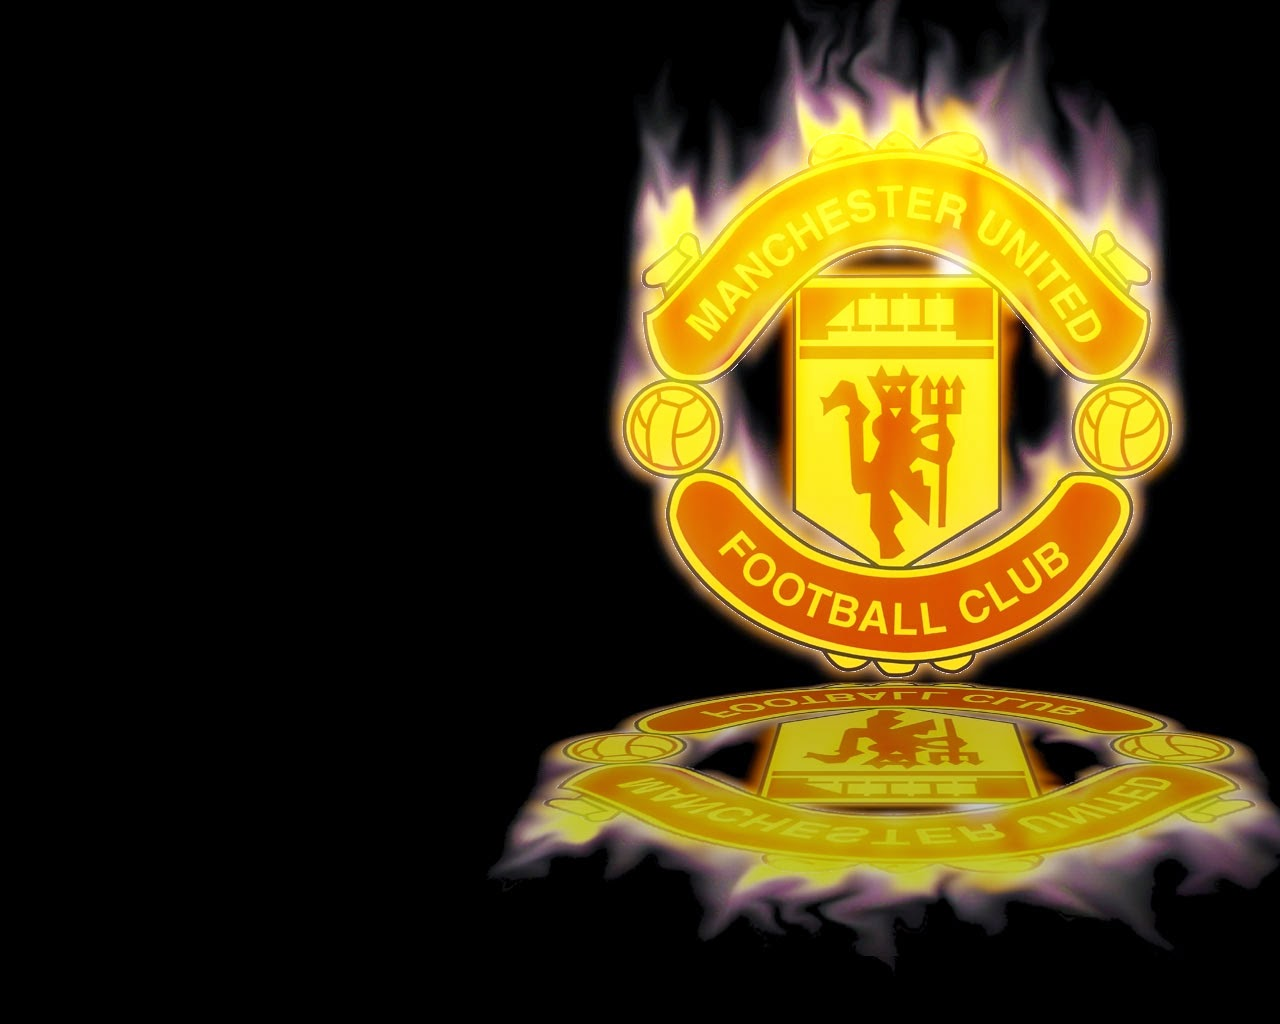 Manchester united logo wallpapers hd wallpaper 1280x1024 voltagebd Choice Image